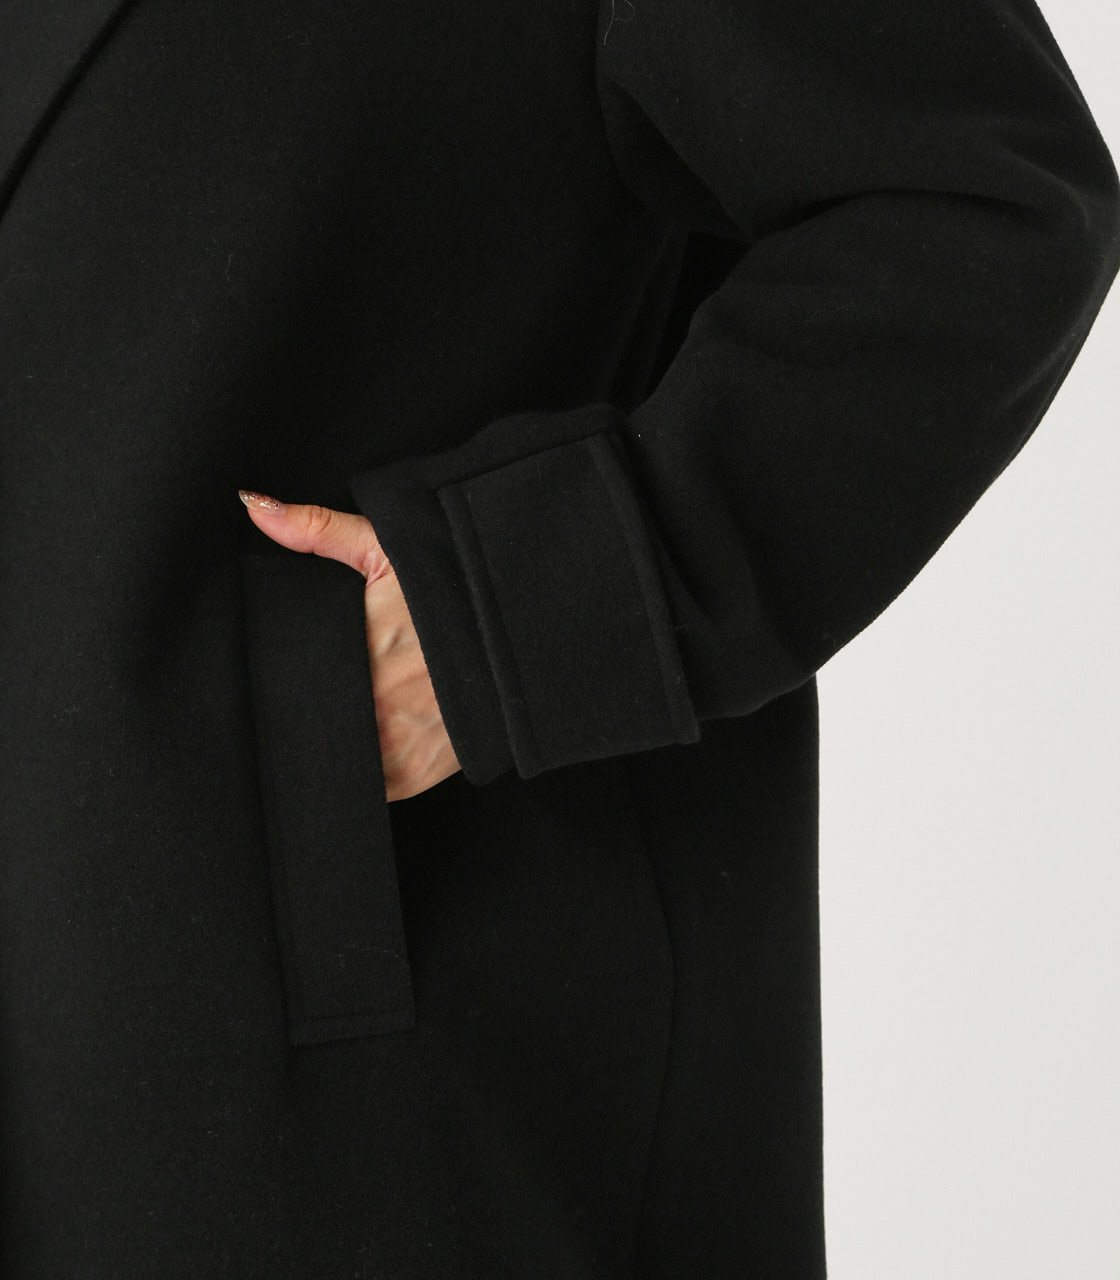 OVER LOOSE CHESTER COAT/オーバールーズチェスターコート 詳細画像 BLK 8